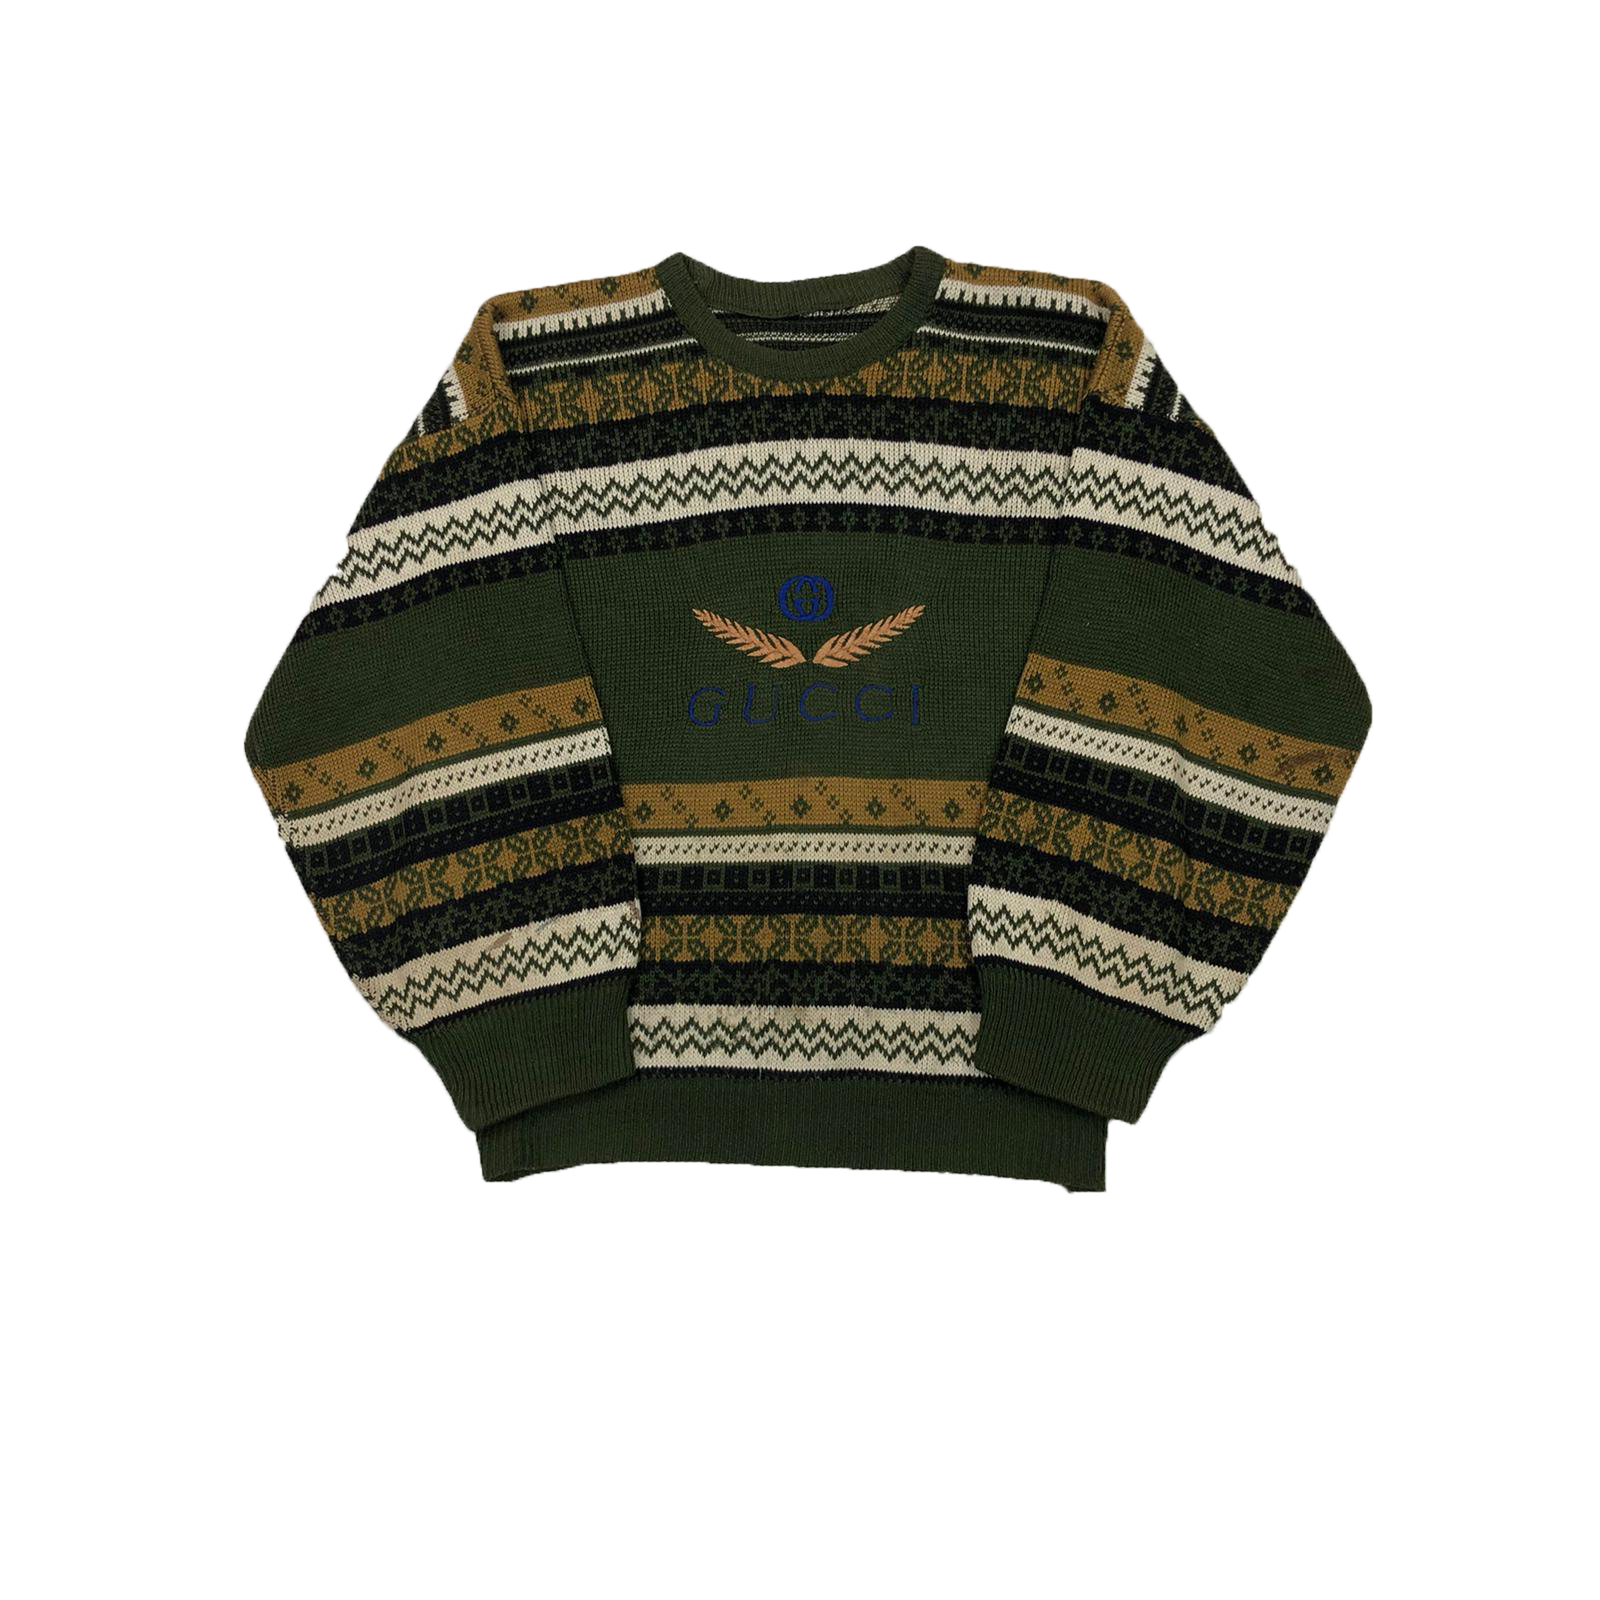 Gucci knit sweatshirt